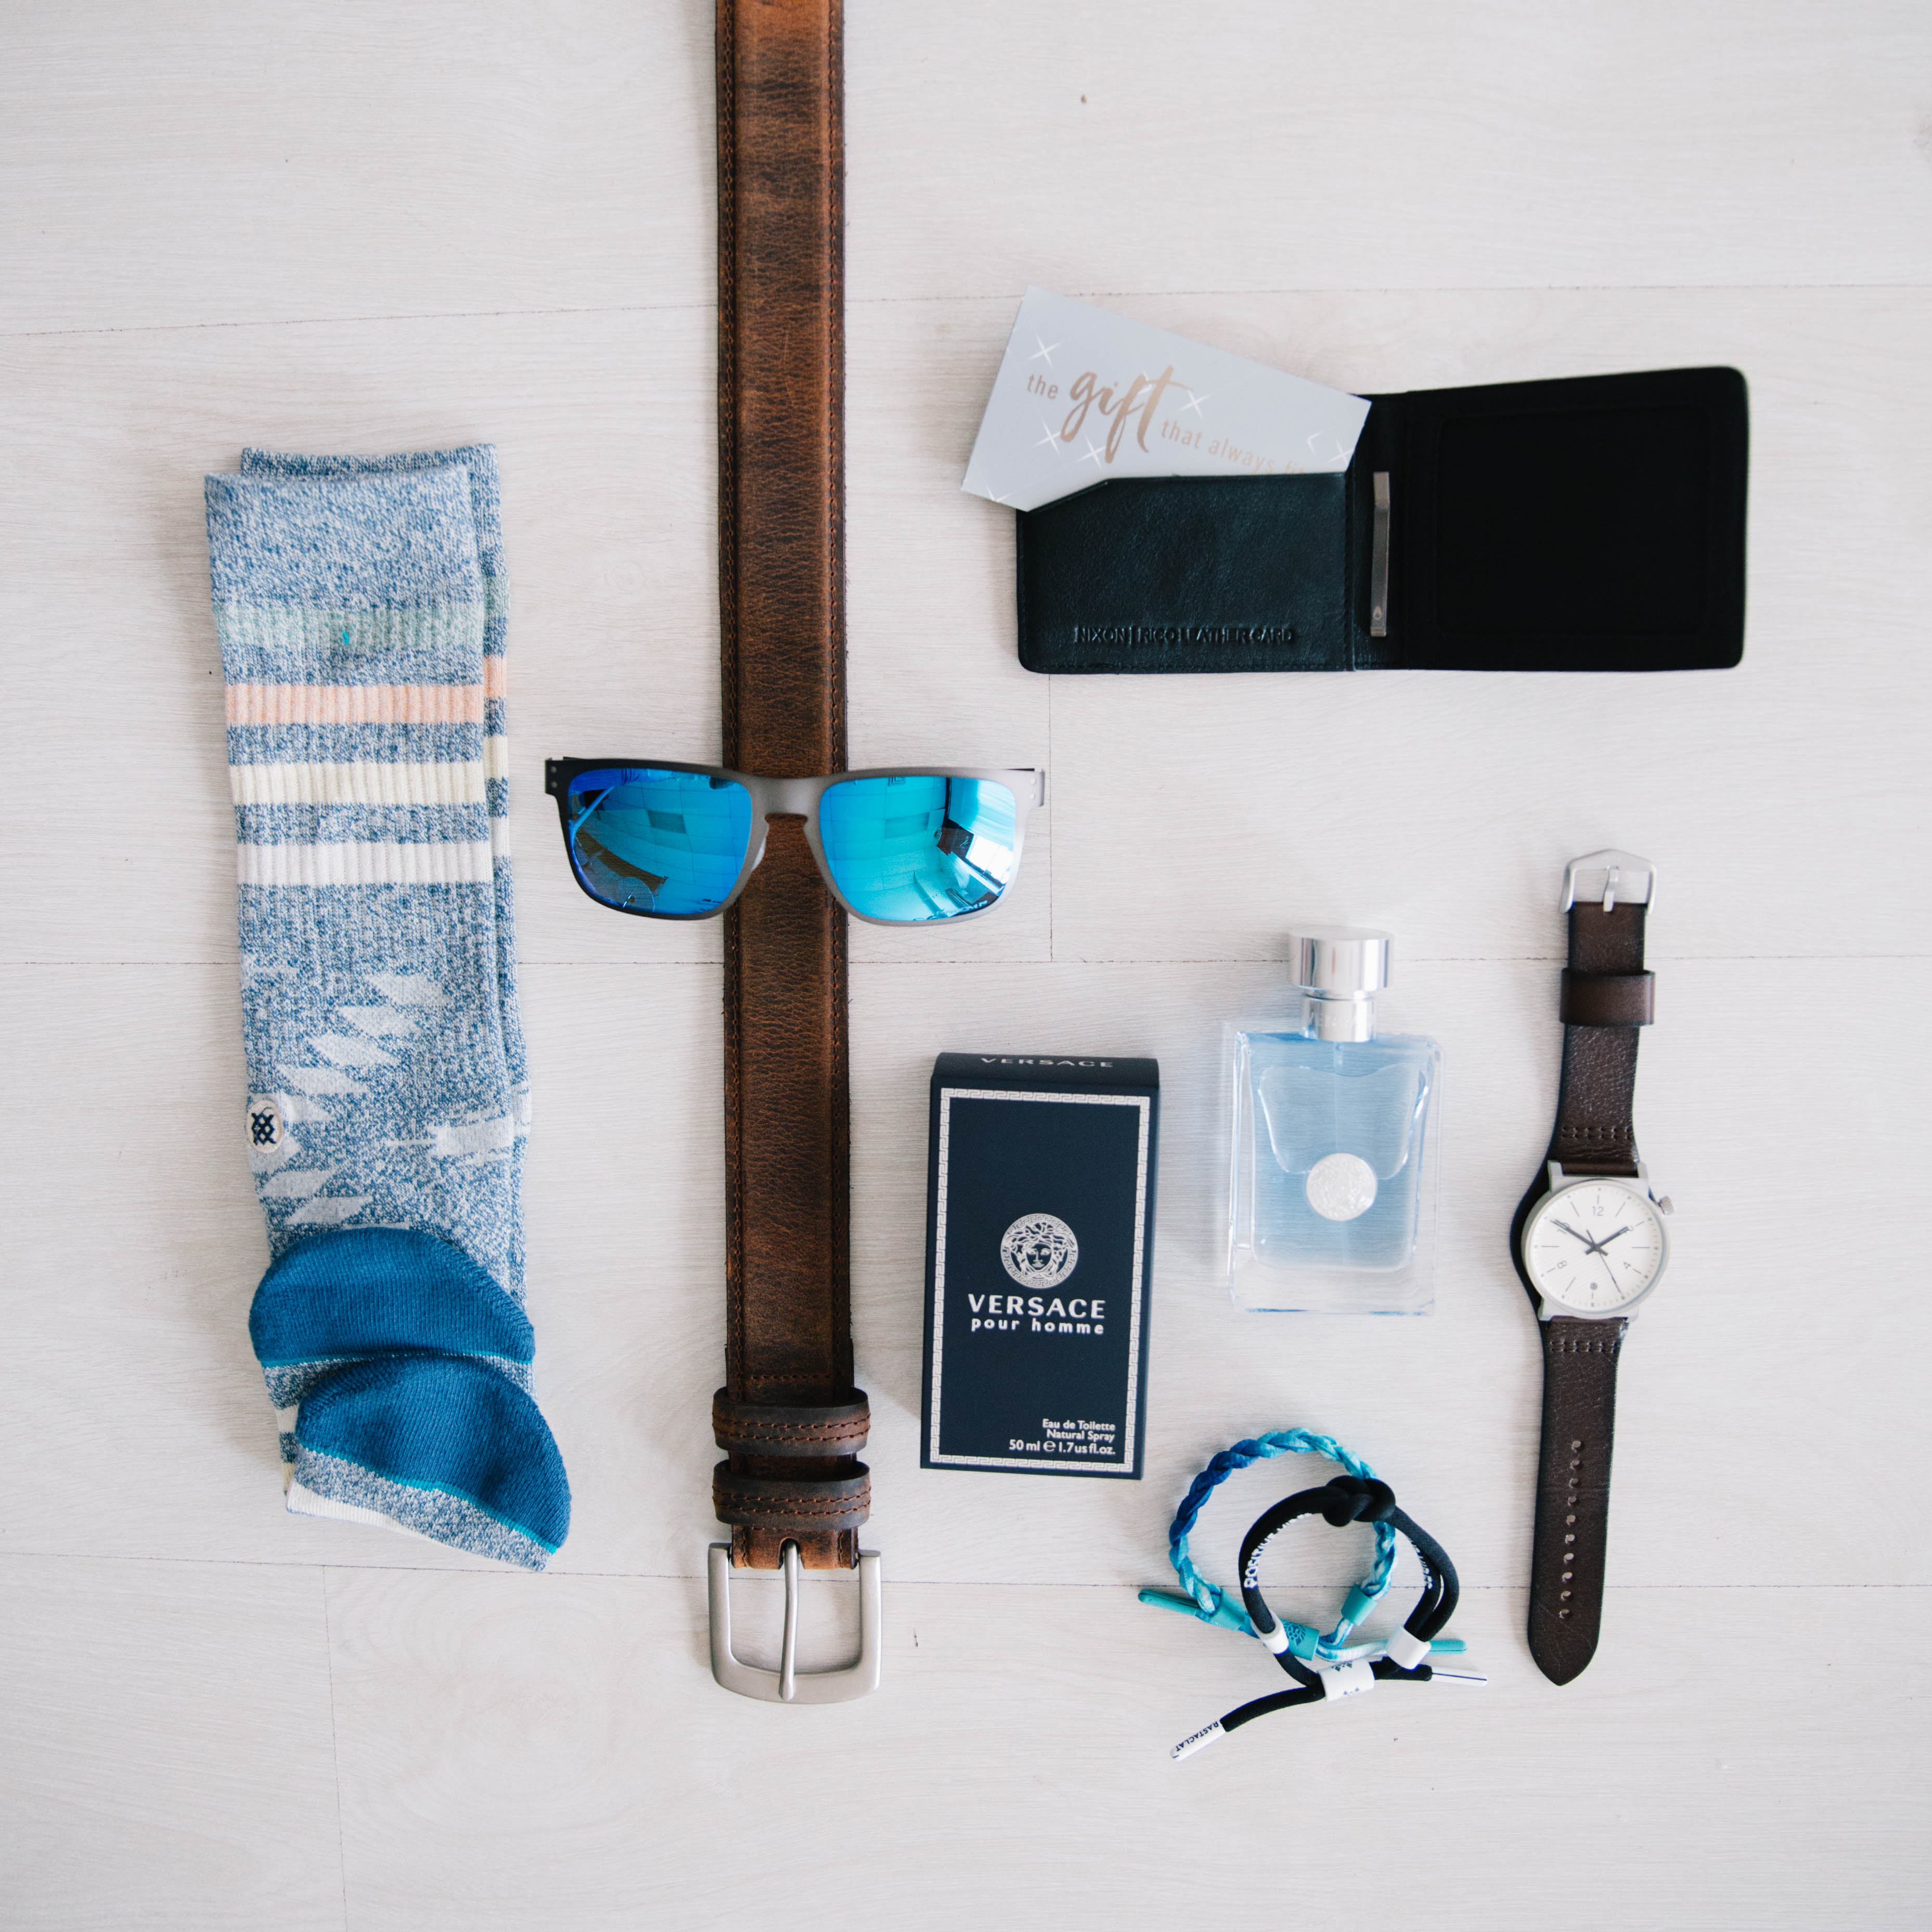 Premium Accessories for Father's Day Gifts - genuine leather belts and wallets, statement-making watches, cologne and Stance socks